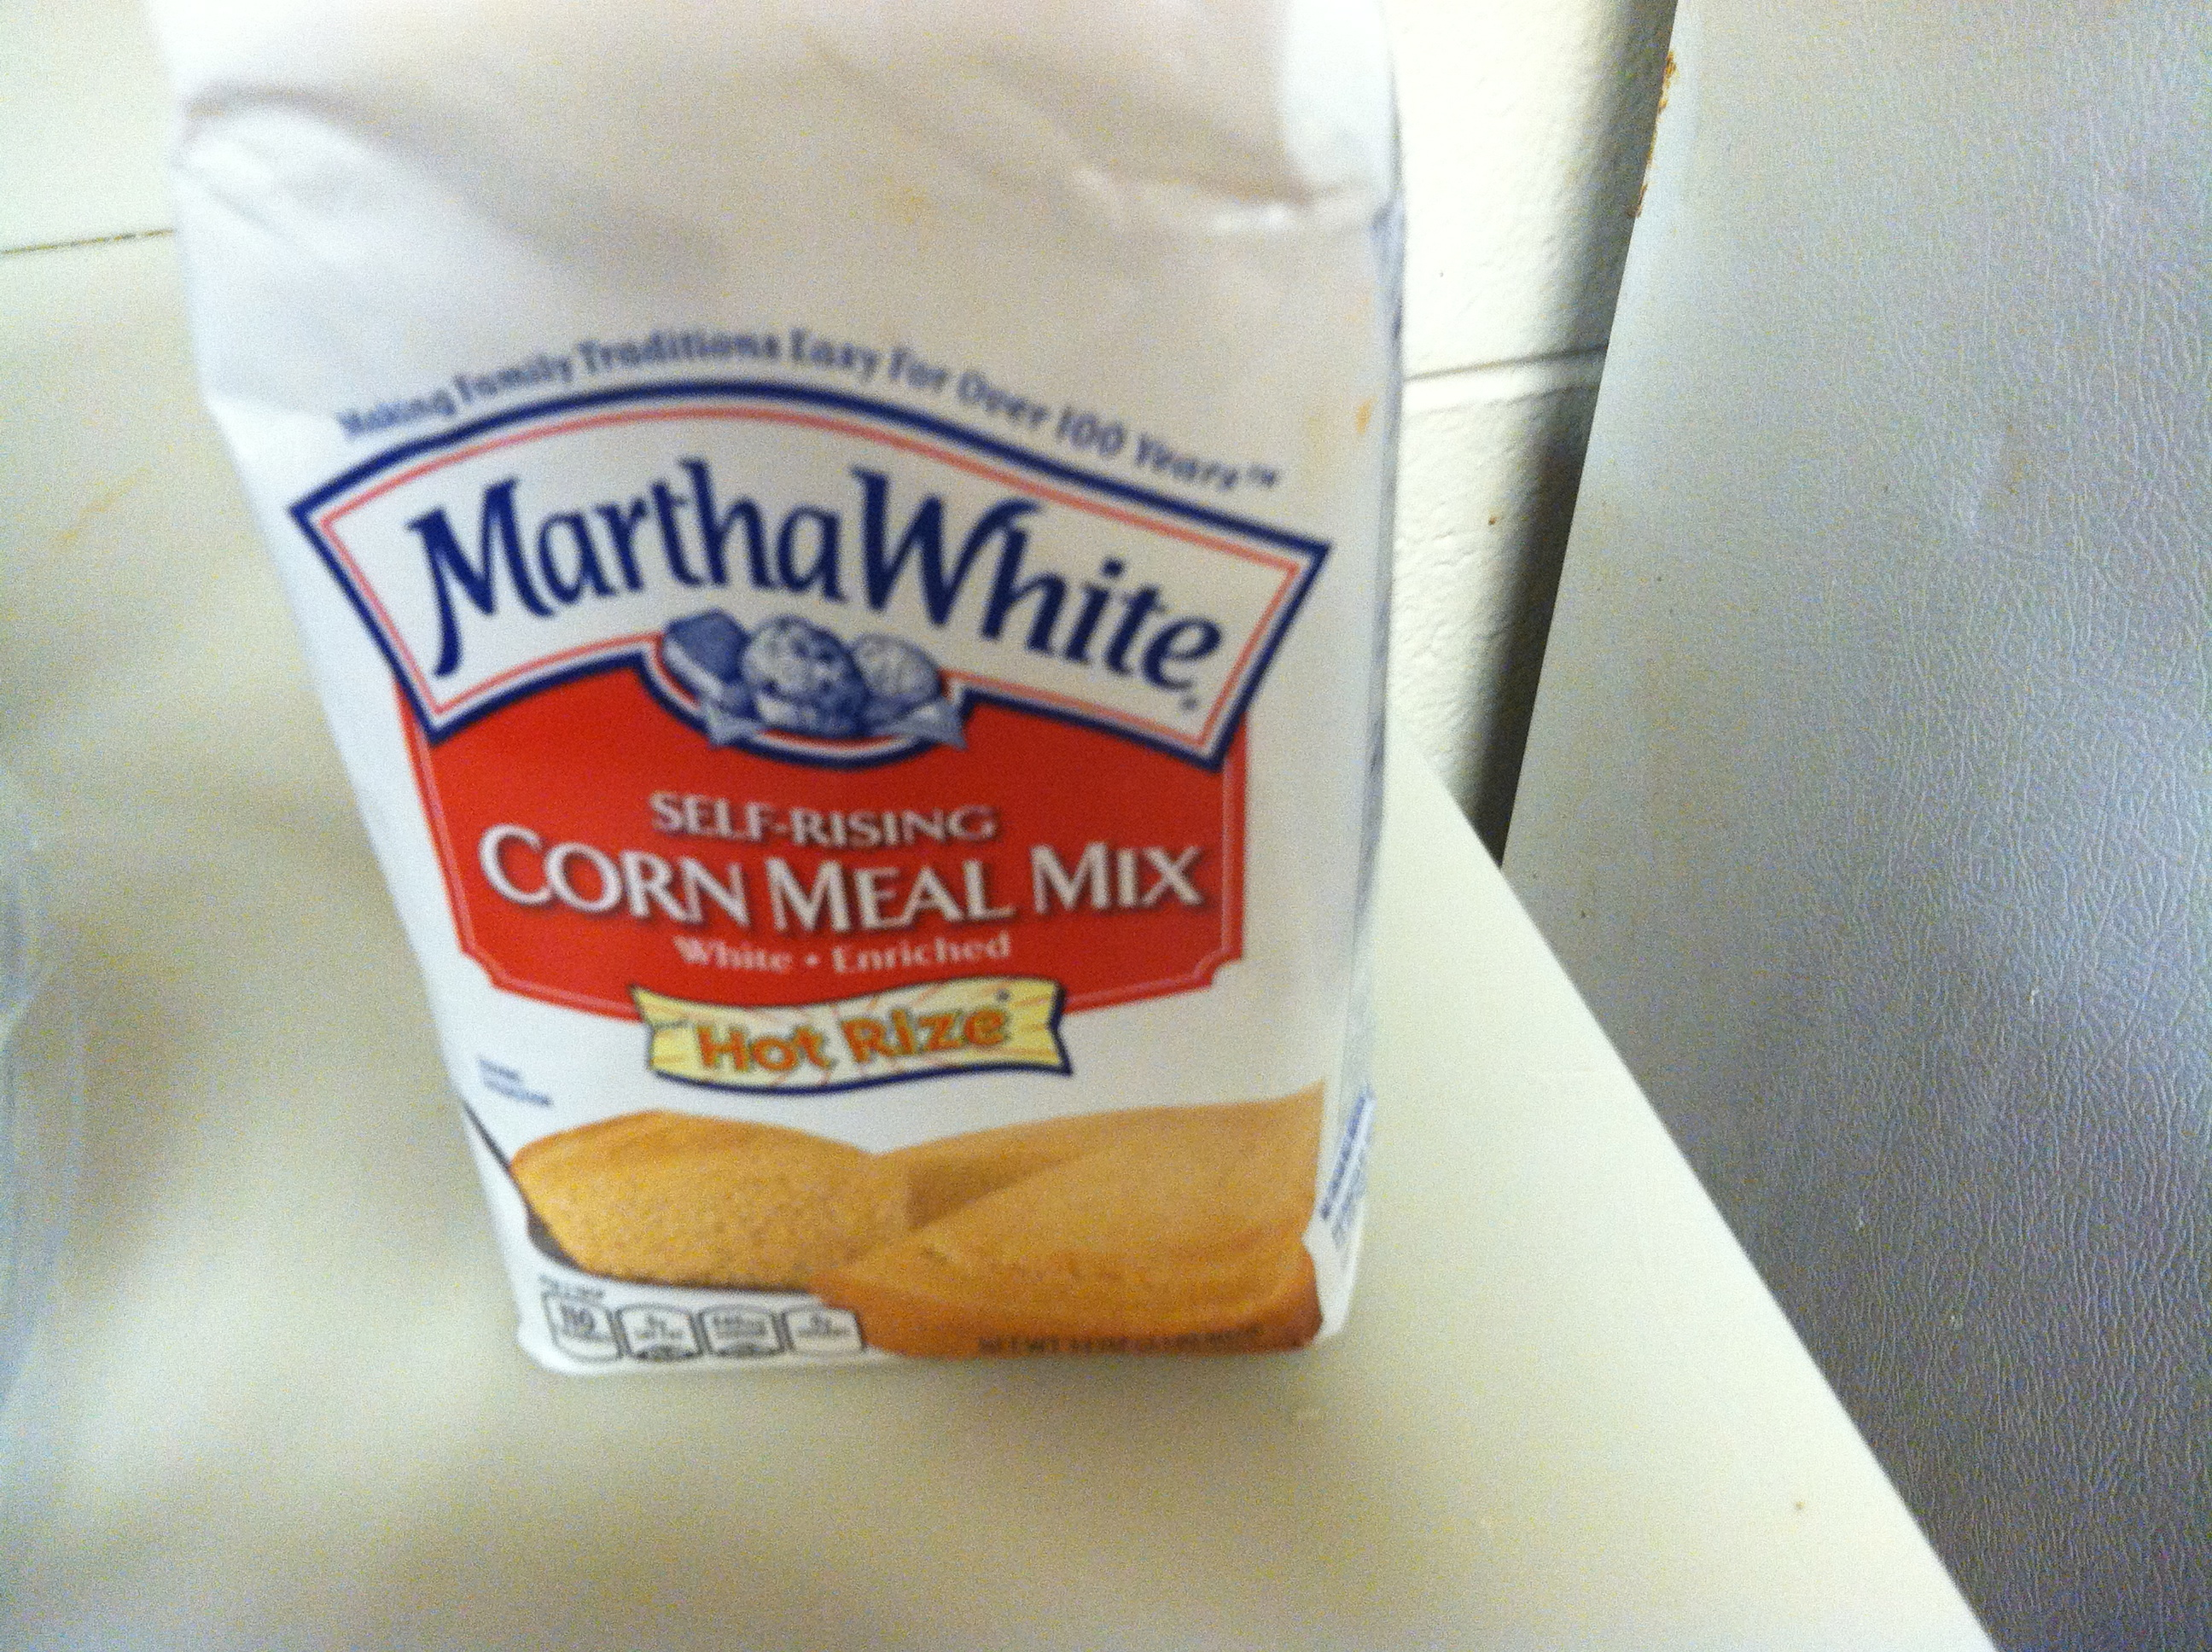 Still not sure if cornmeal and cornstarch are the same thing